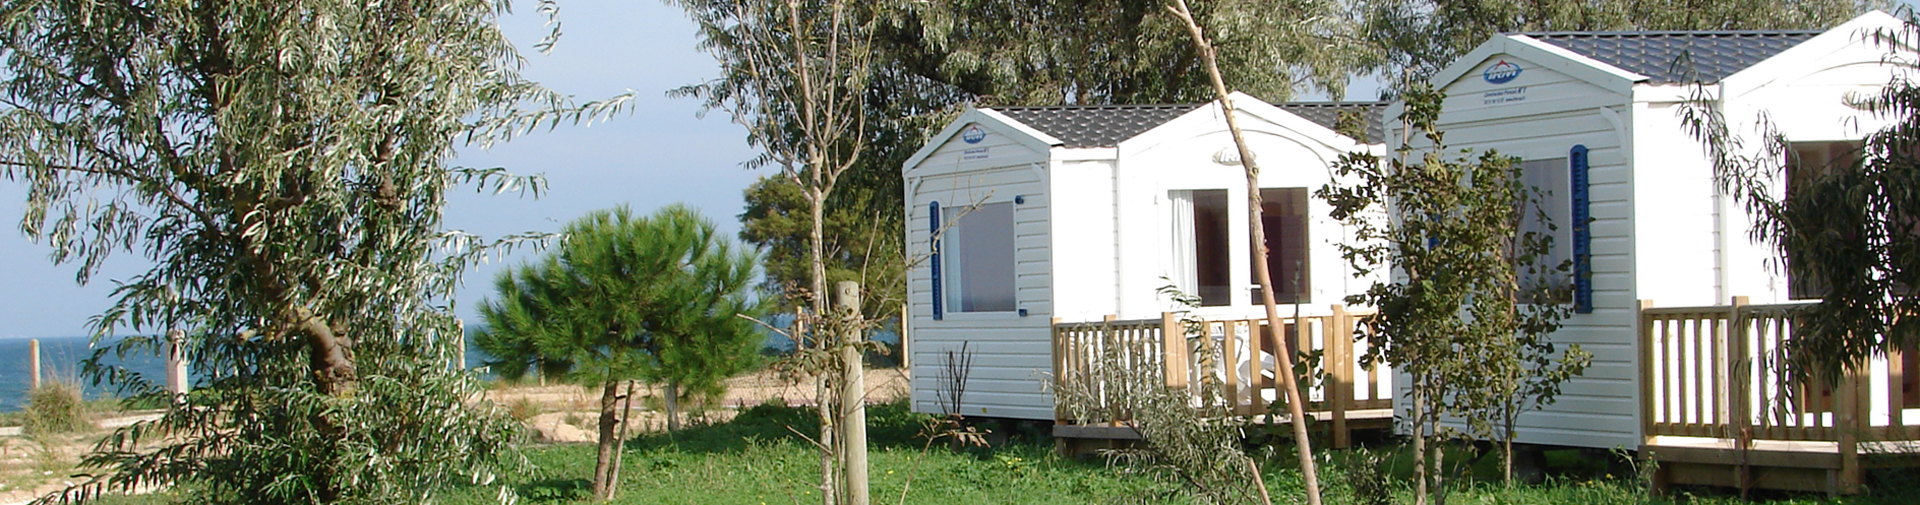 location-chalets-mobil-homes-bord-de-mer-ile-d-oleron